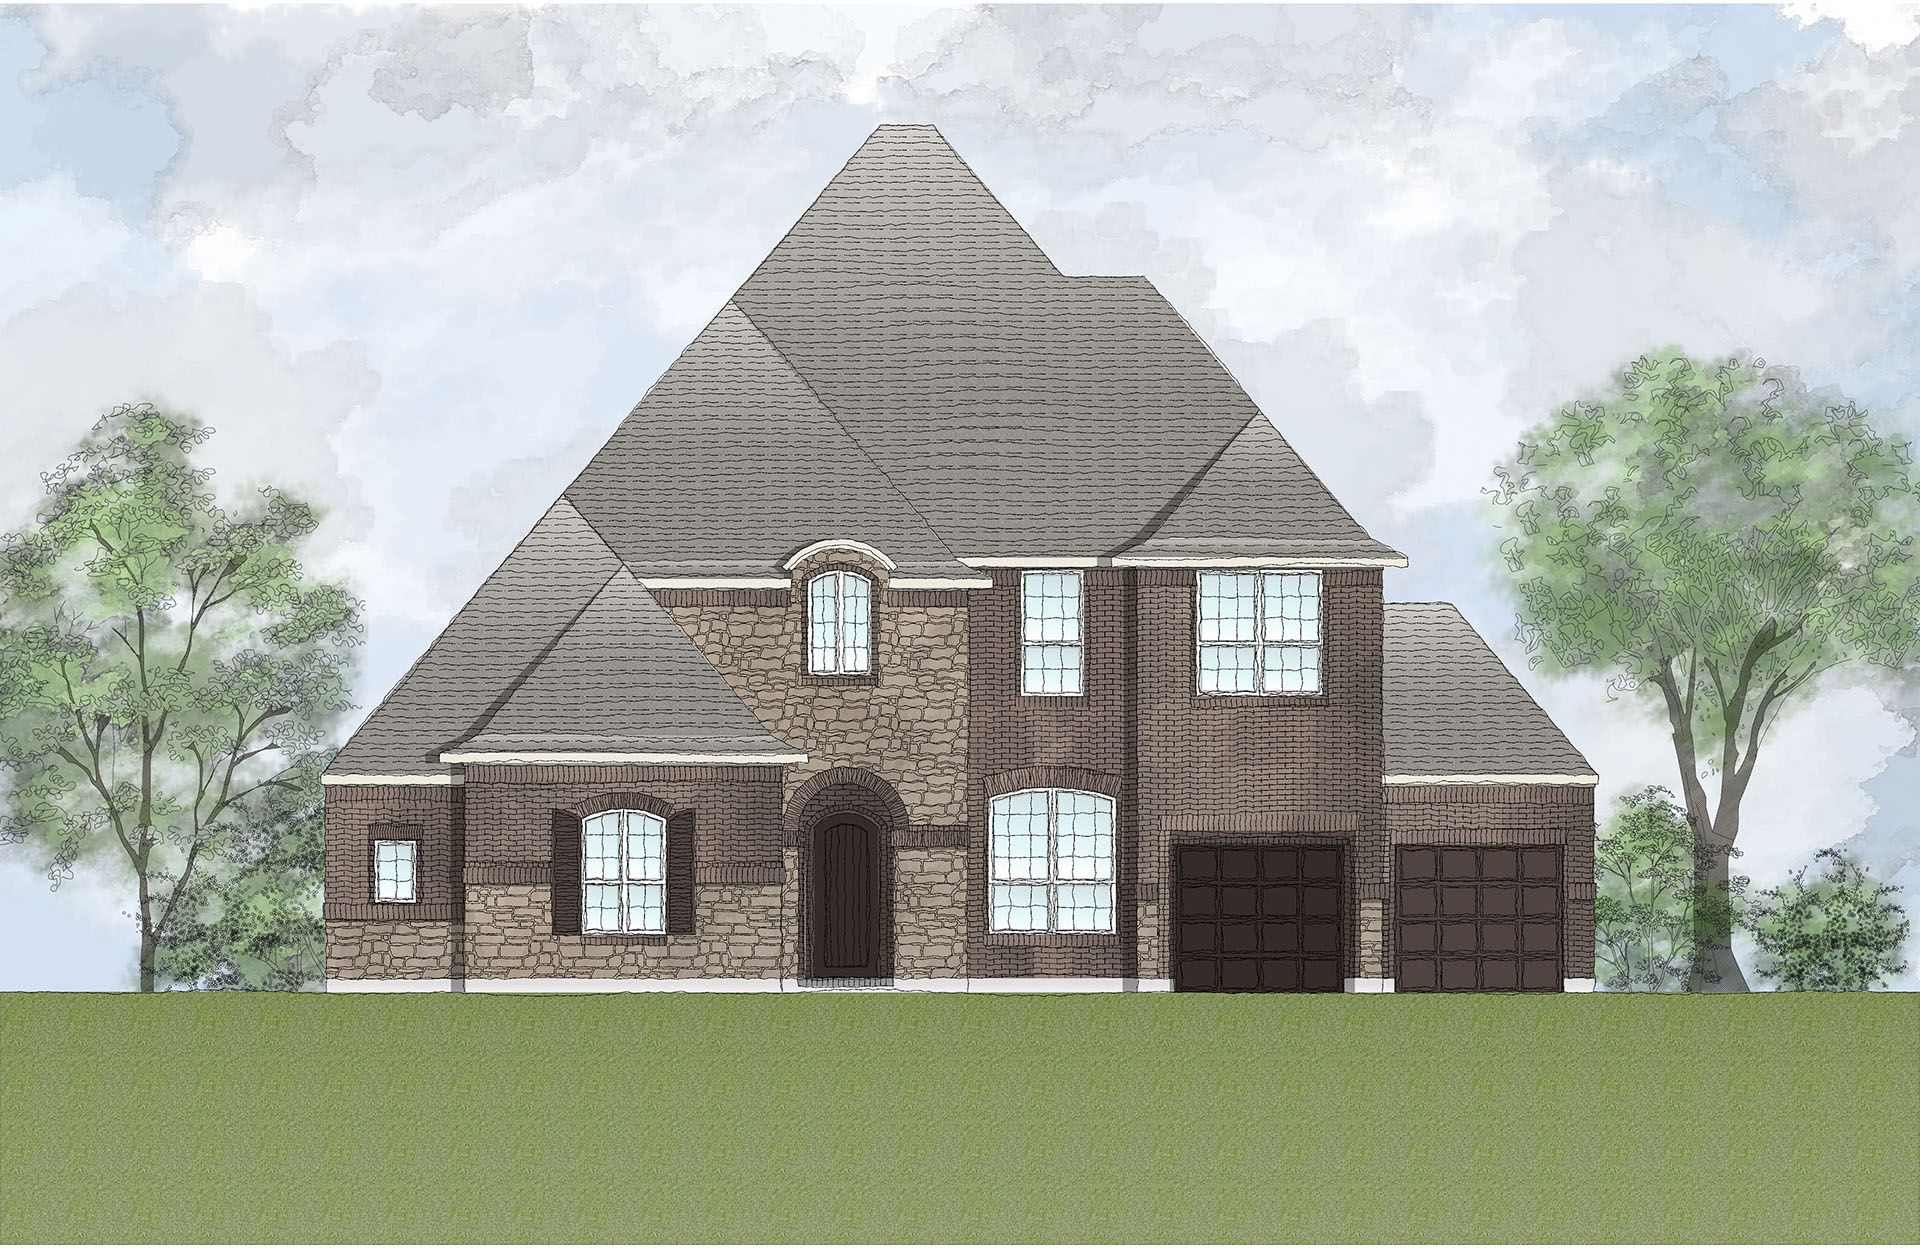 Single Family for Active at Harper's Preserve - Riviera Model Home Coming Soon! Conroe, Texas 77385 United States